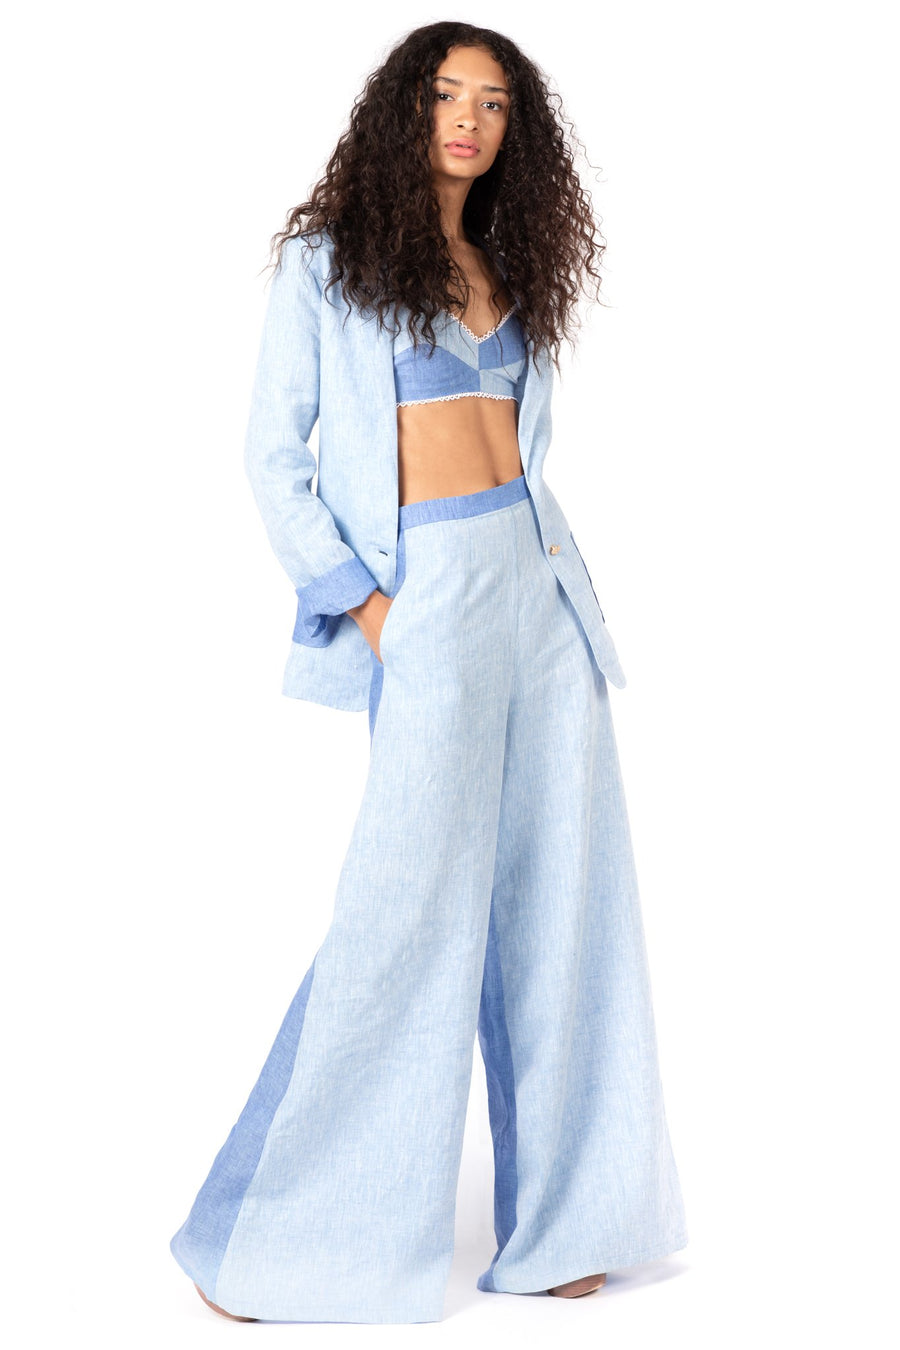 This is a photo of a woman wearing a matching three piece set, inluding a two tone blue linen blazer with a paneled bralette underneath and paired with flare leg pants that are light blue paneled in the front and darker blue paneled at the back.